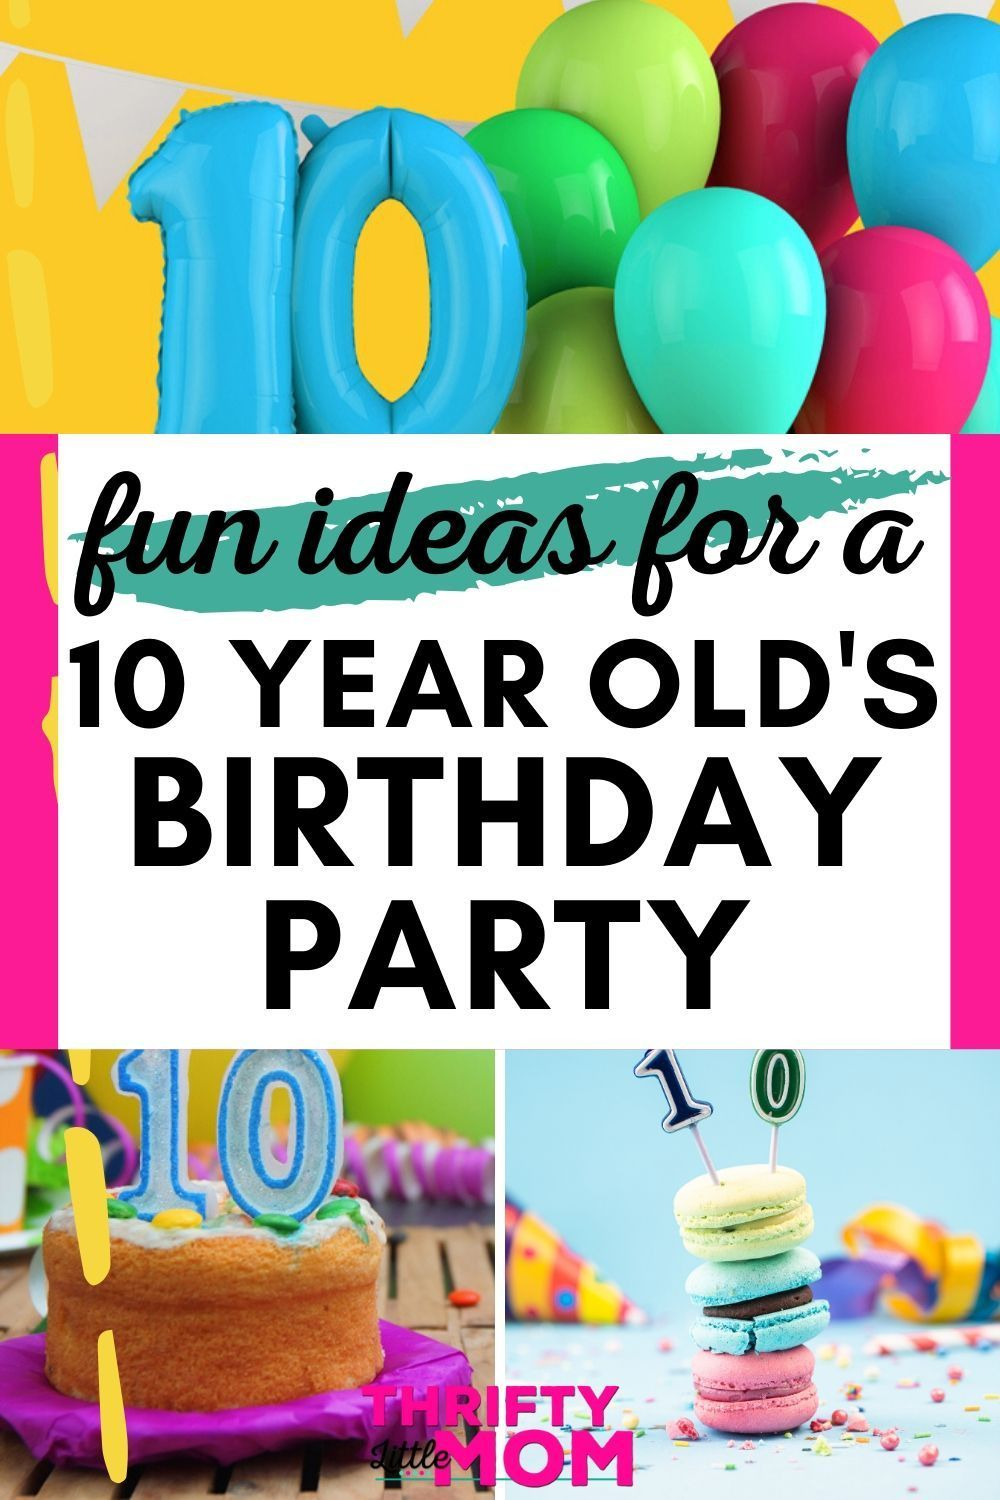 10 Year Old Birthday Party Ideas In 2020 Boys Birthday Party Food Boy Birthday Party Themes Fun Birthday Party